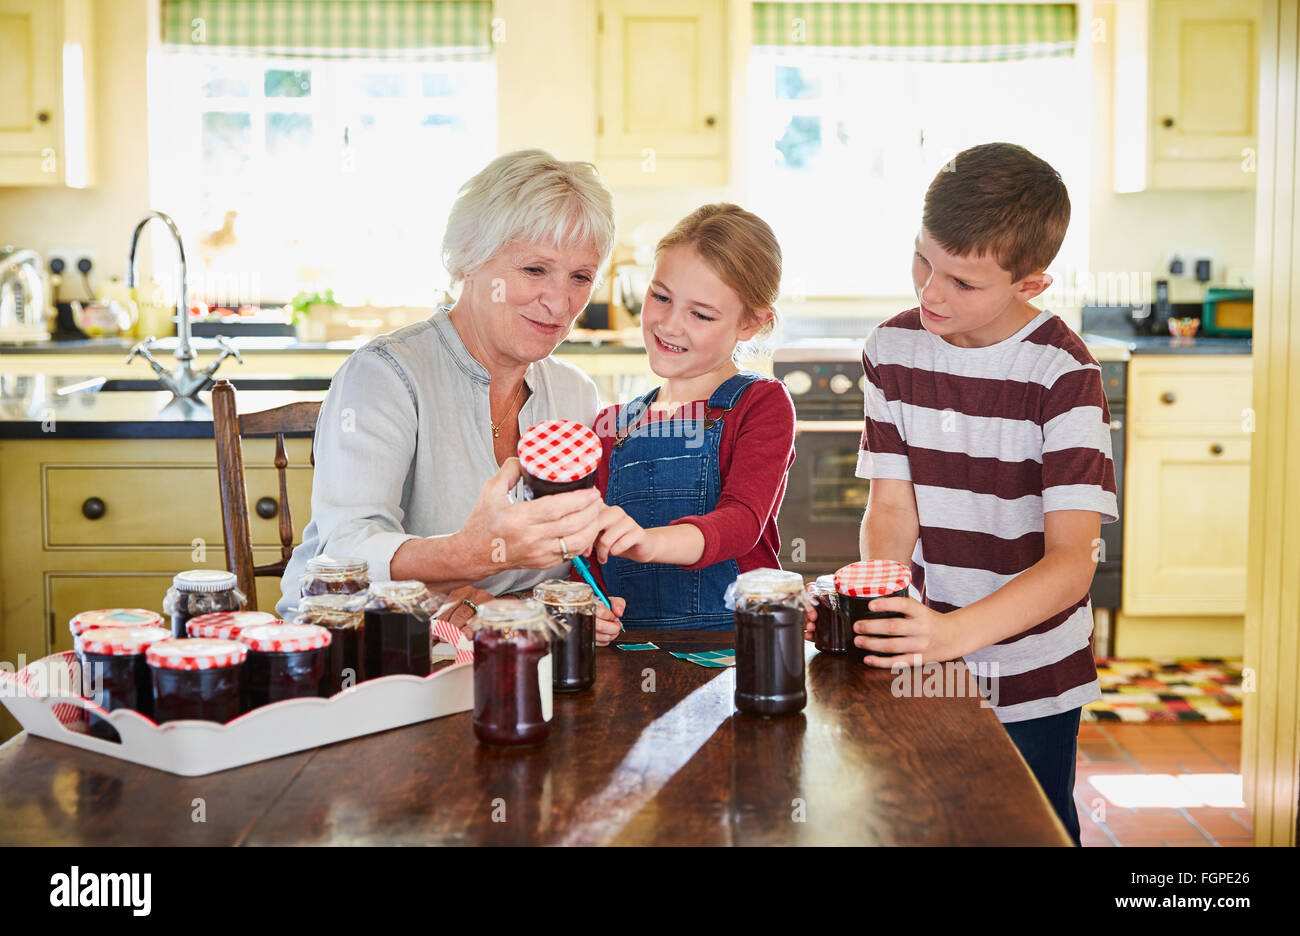 Grandmother canning jam with grandchildren in kitchen - Stock Image